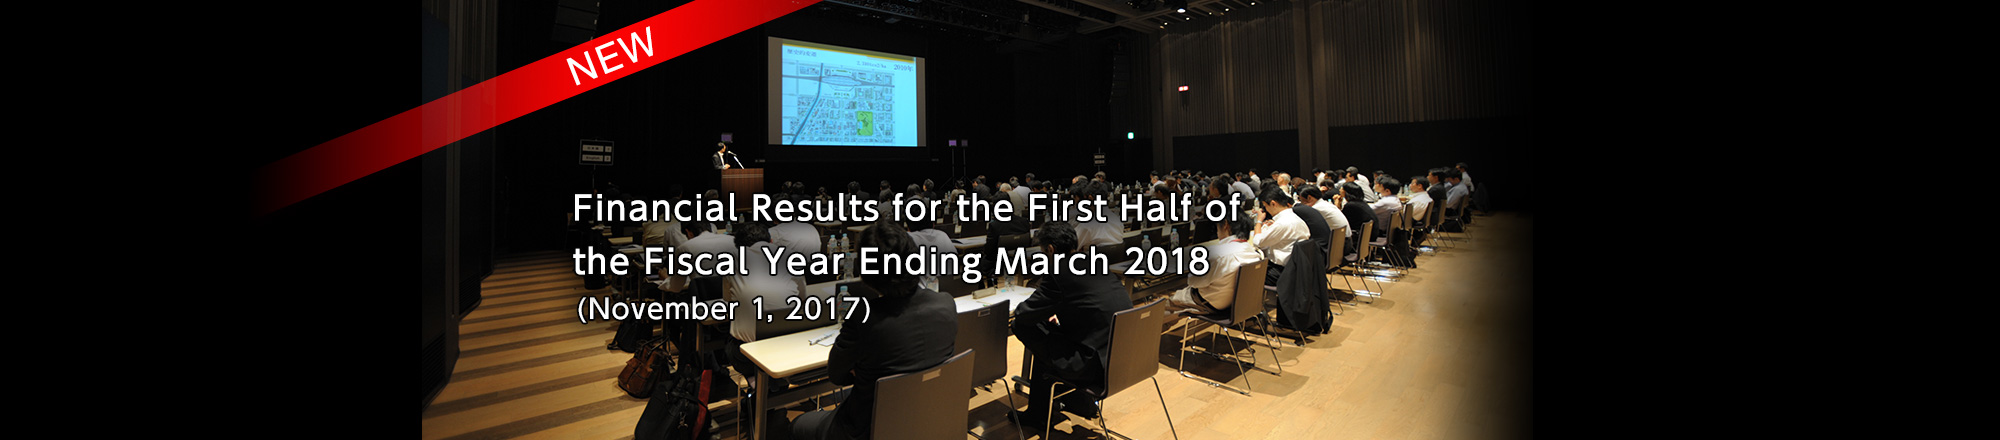 Financial Results for the First Half of the Fiscal Year Ending March 2018 (November 1, 2017)